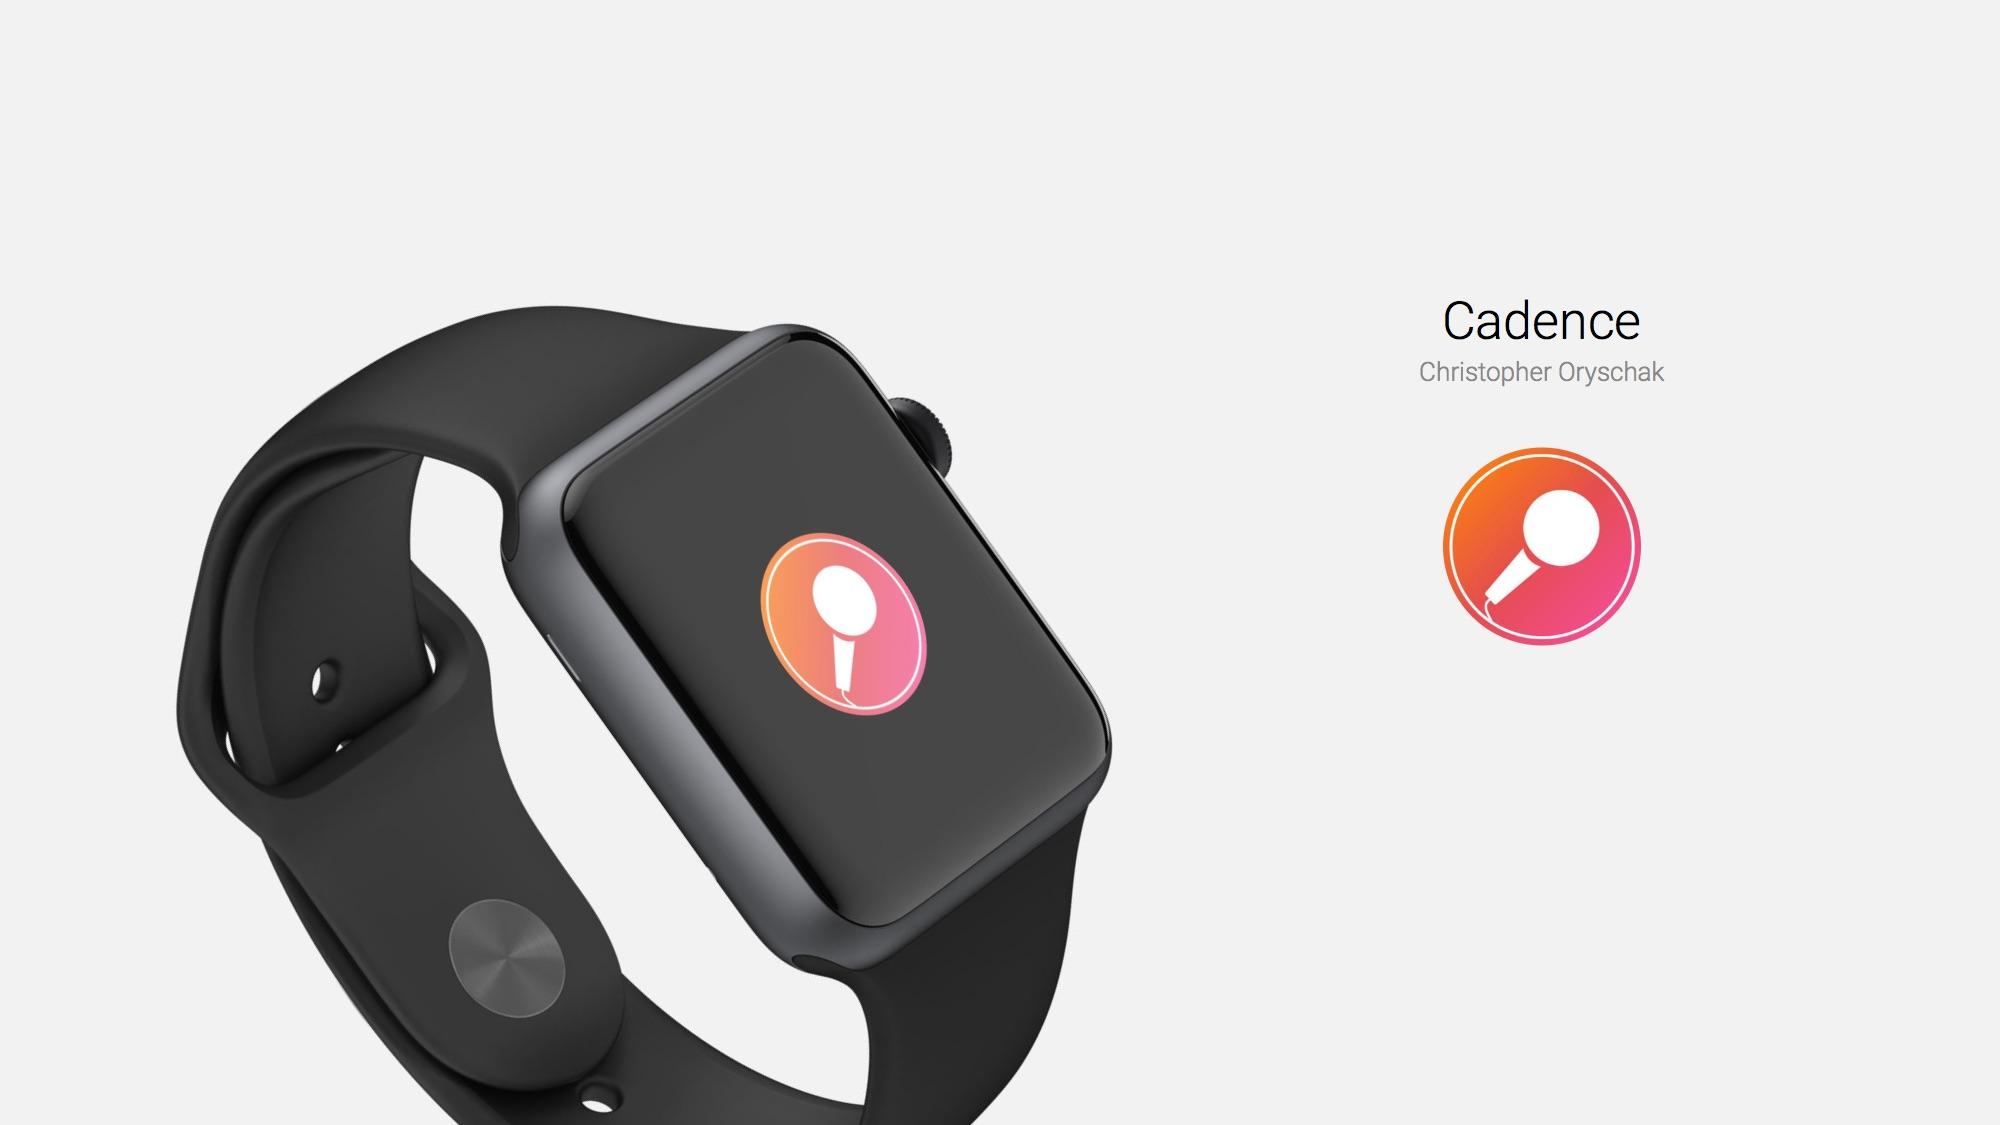 Cadence on Apple Watch Improves Your Public Speaking